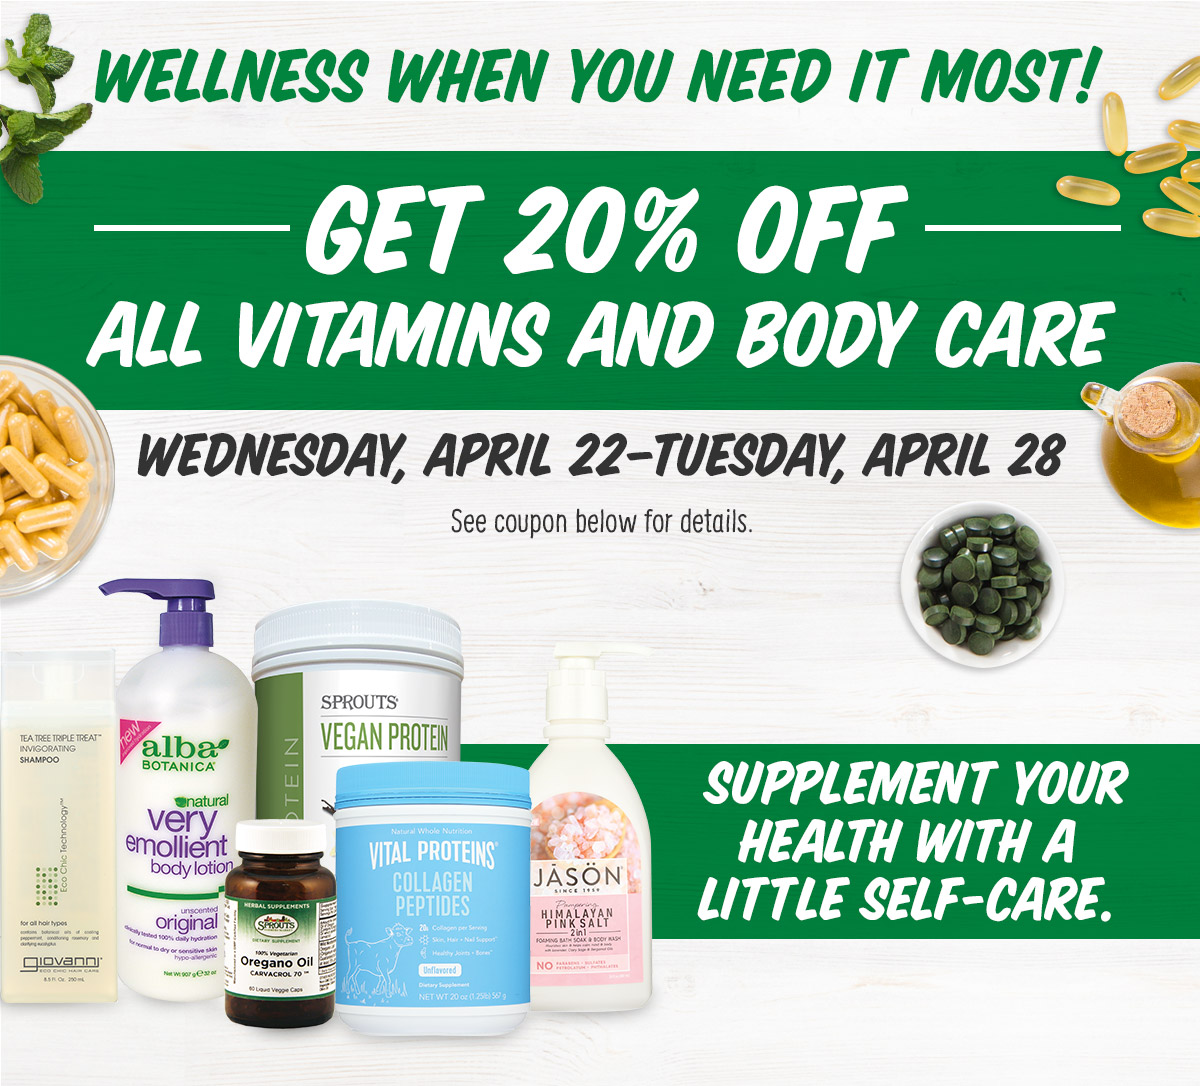 Get 20% Off All Vitamins and Body Care